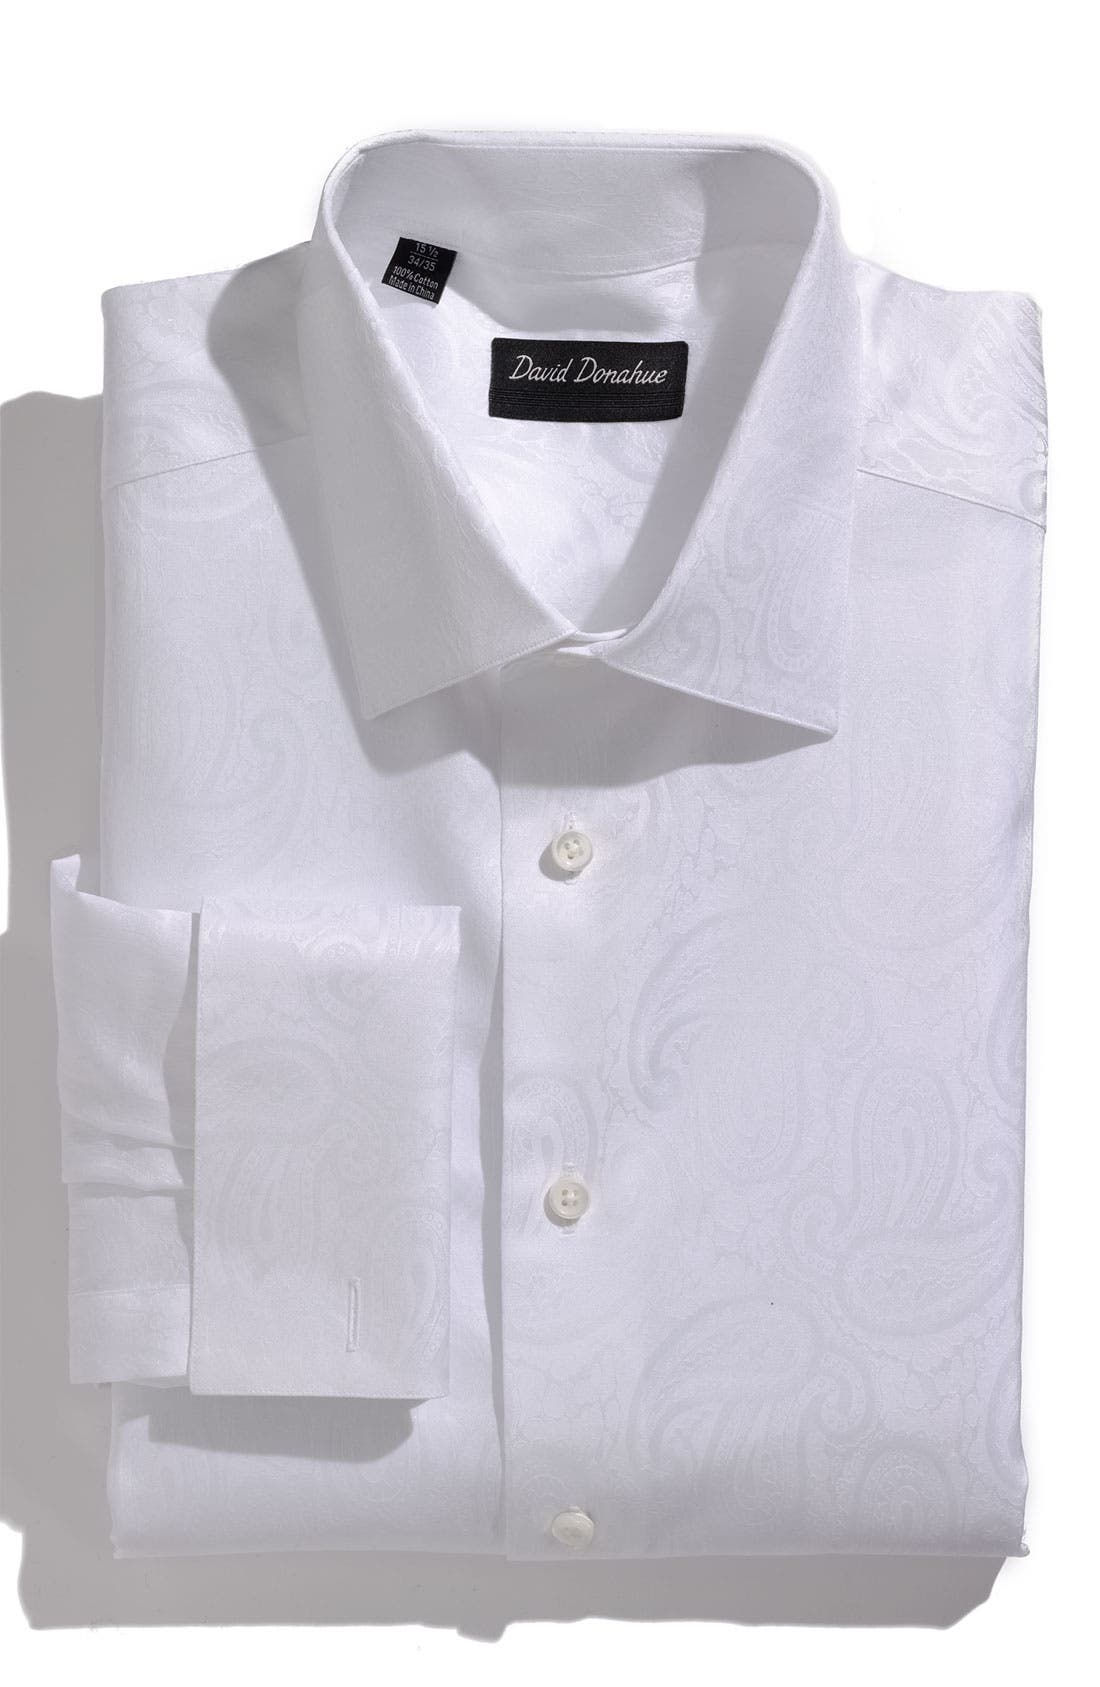 Alternate Image 1 Selected - David Donahue Regular Fit Tuxedo Shirt